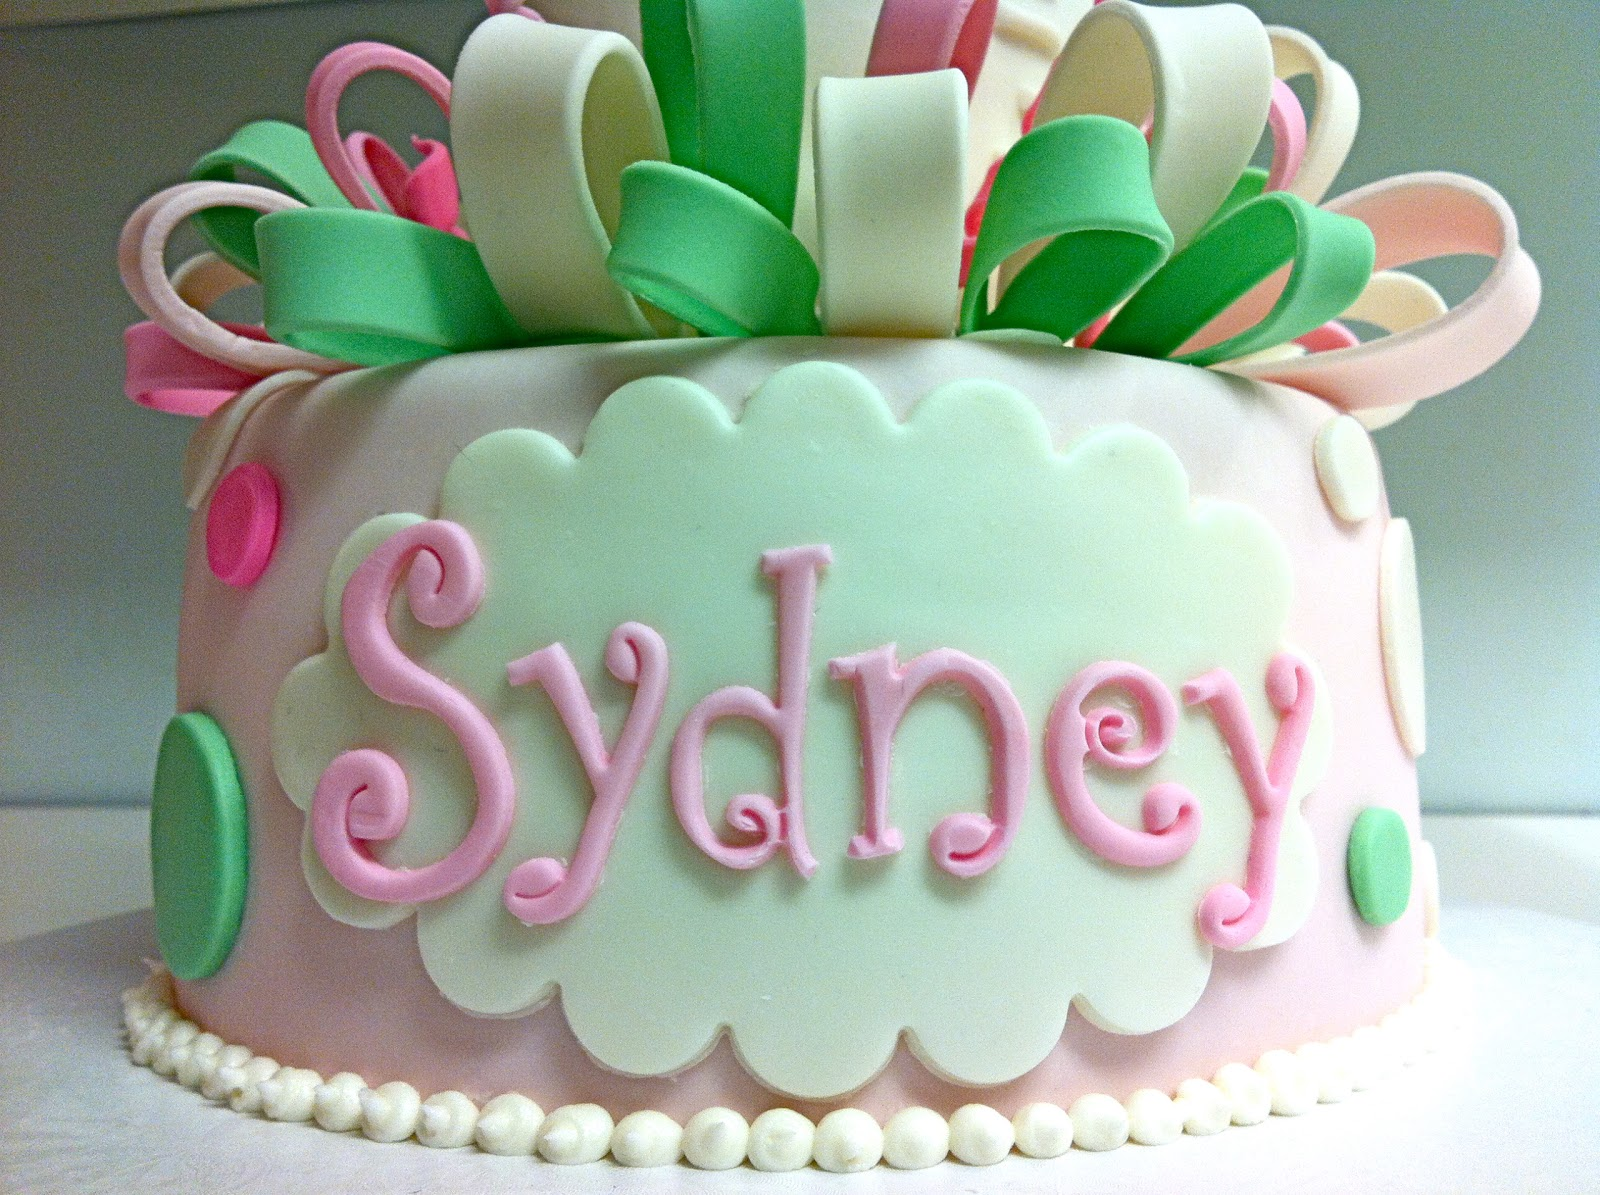 Cake Decorating Letter Cutters : MegMade Cakes: Baby Shower Cake for Sydney